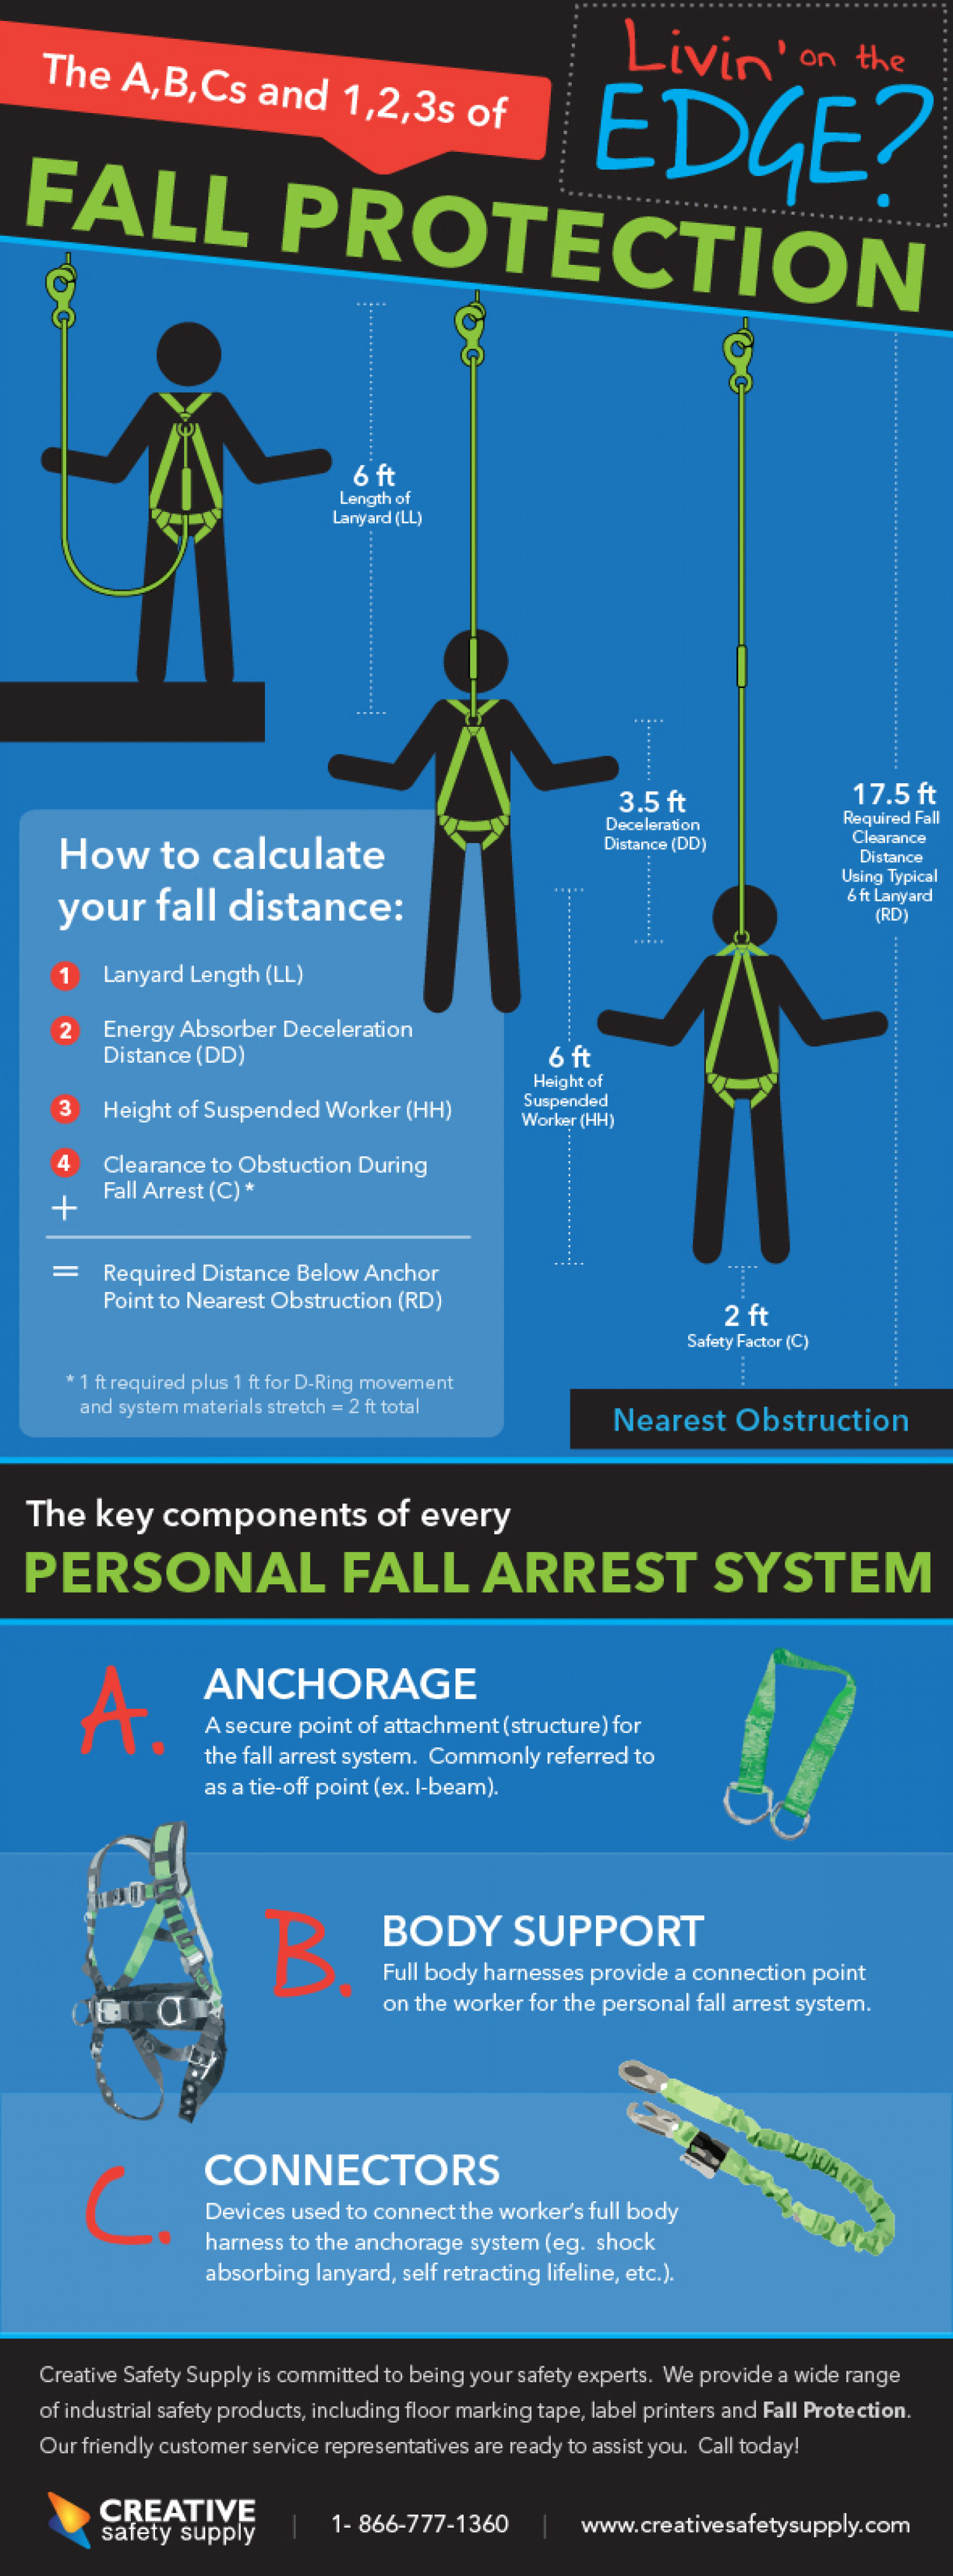 The ABCs and 123s of Fall Protection Infographic